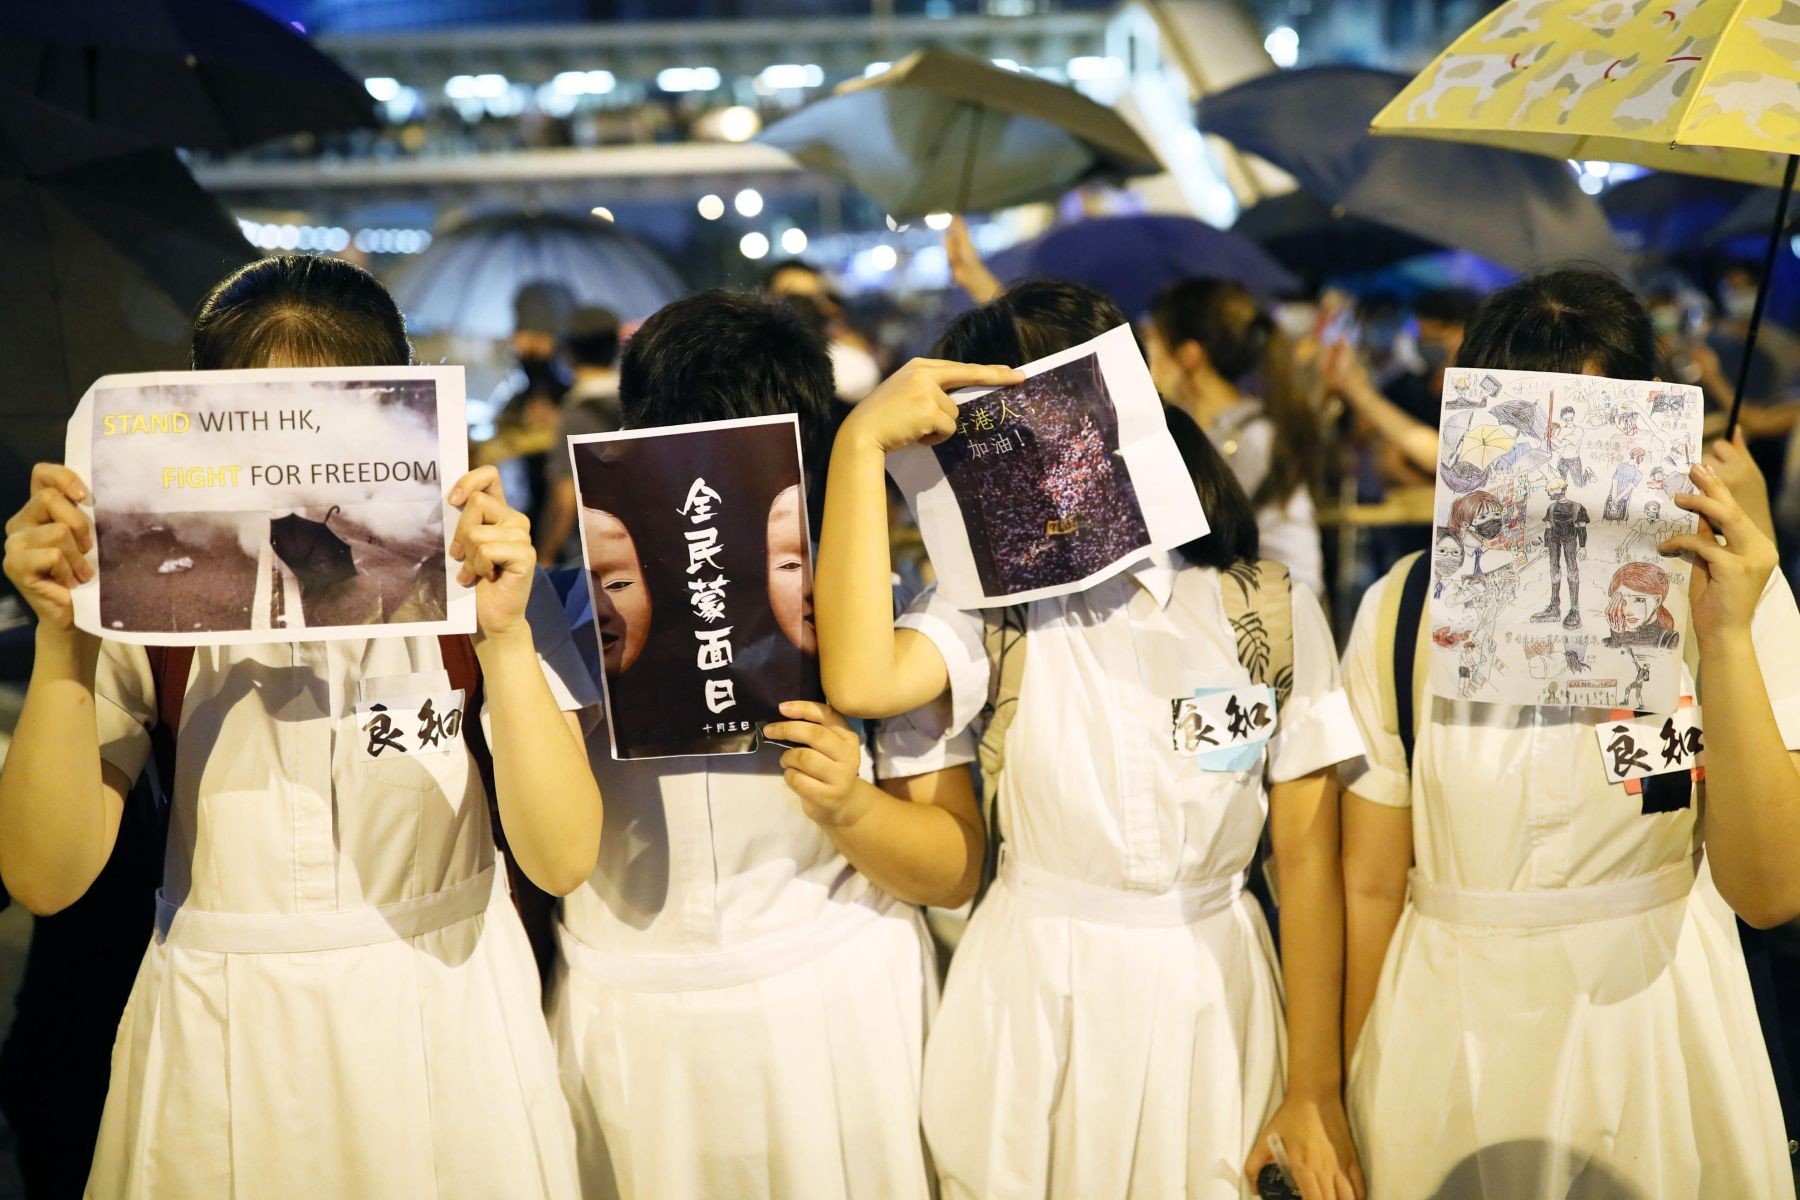 Hong Kongs Emergency Ordinance Effectively A Declaration of Martial Law 047